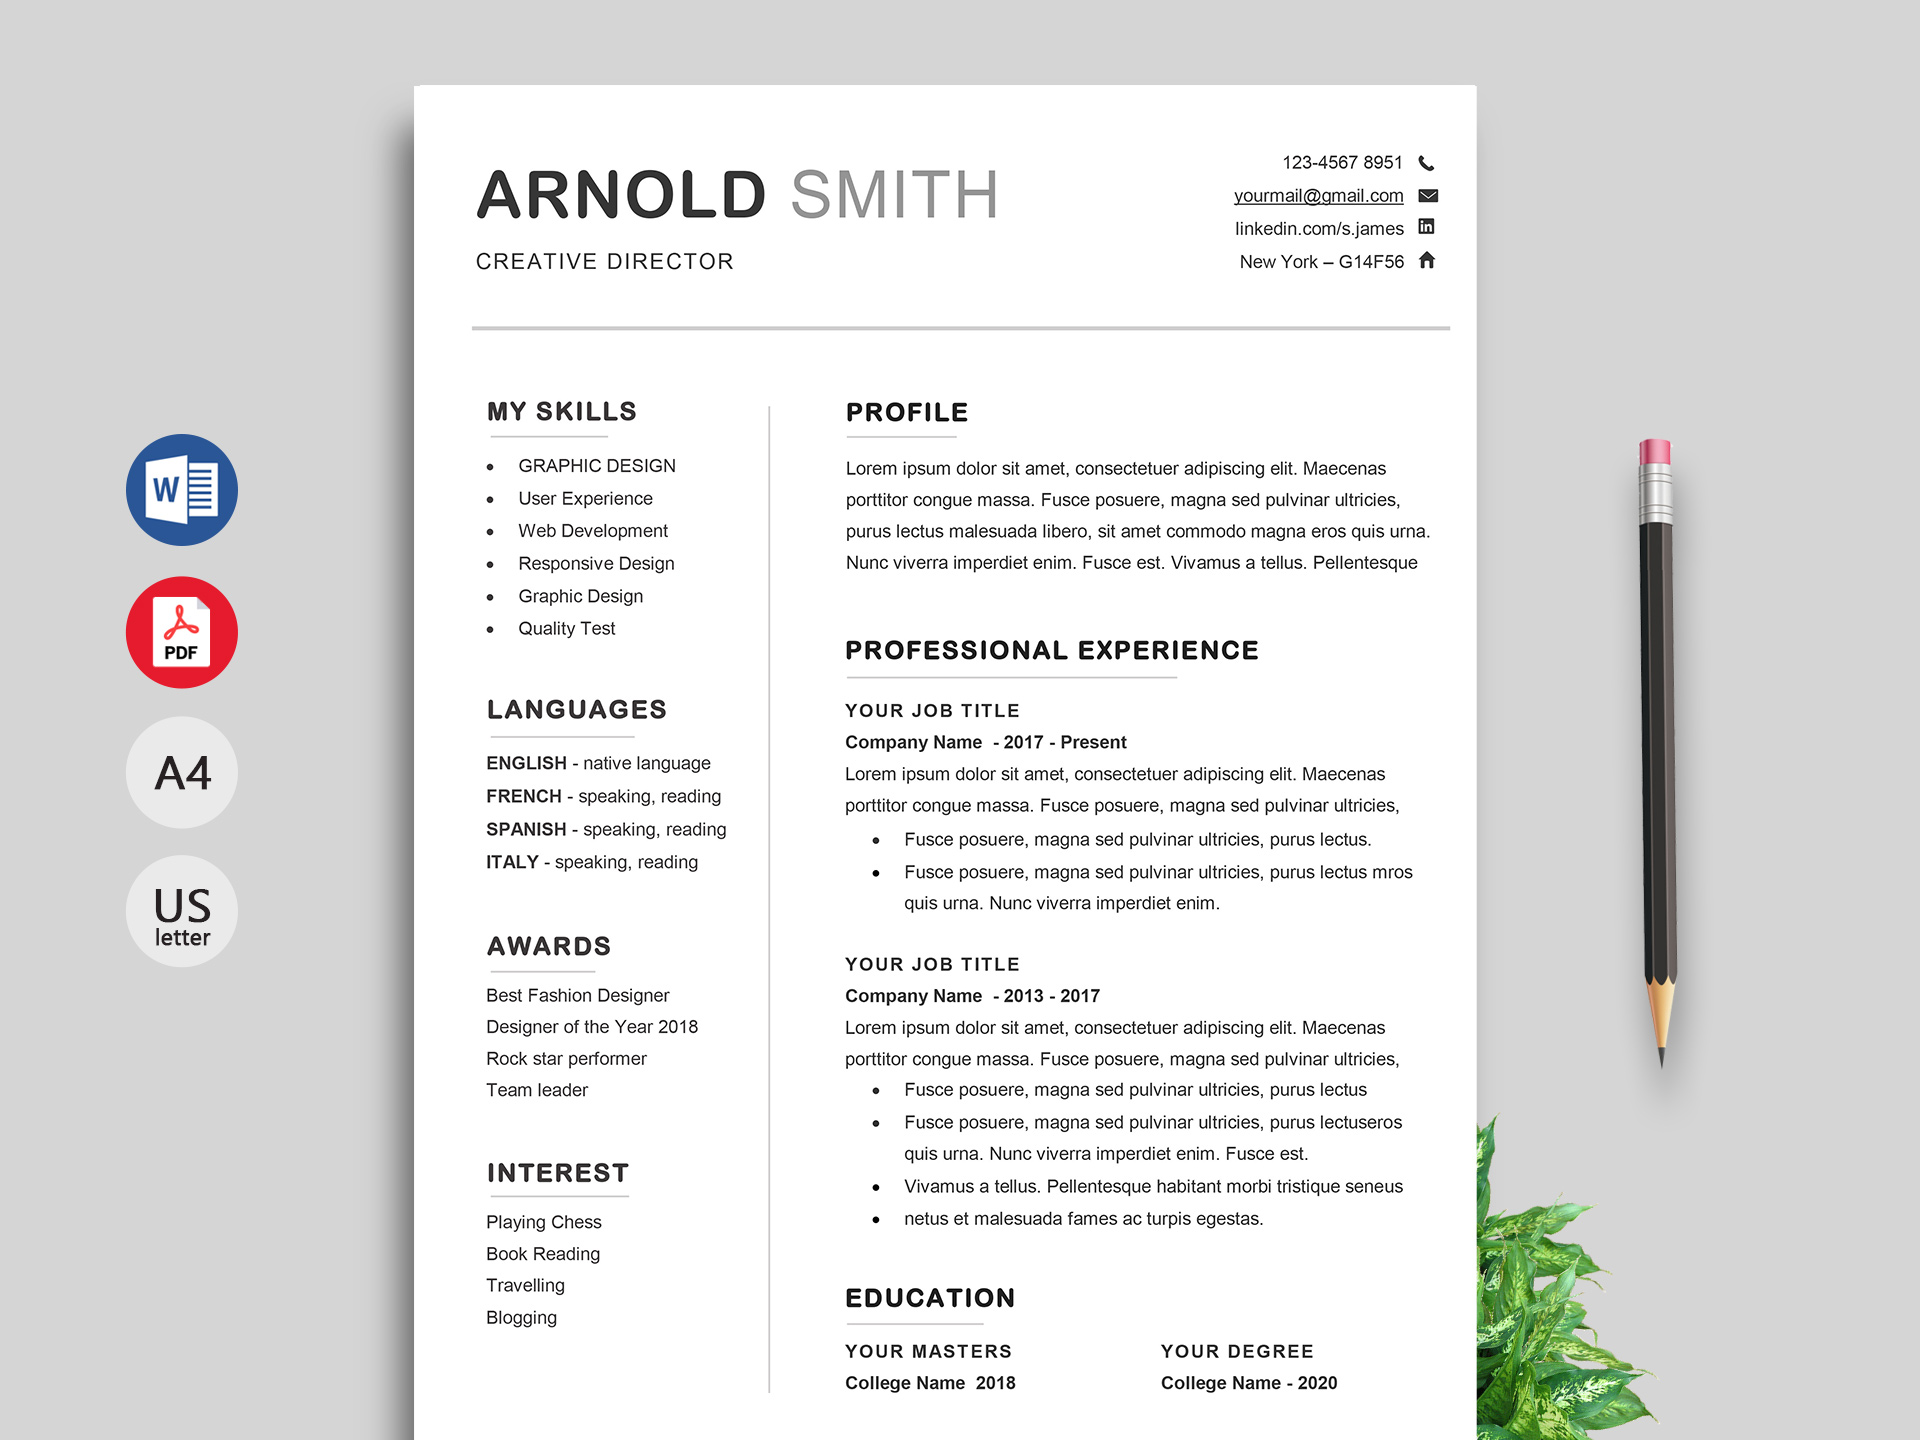 free resume cv templates in word format resumekraft template employment with linkedin Resume Free Resume Templates 2020 Download